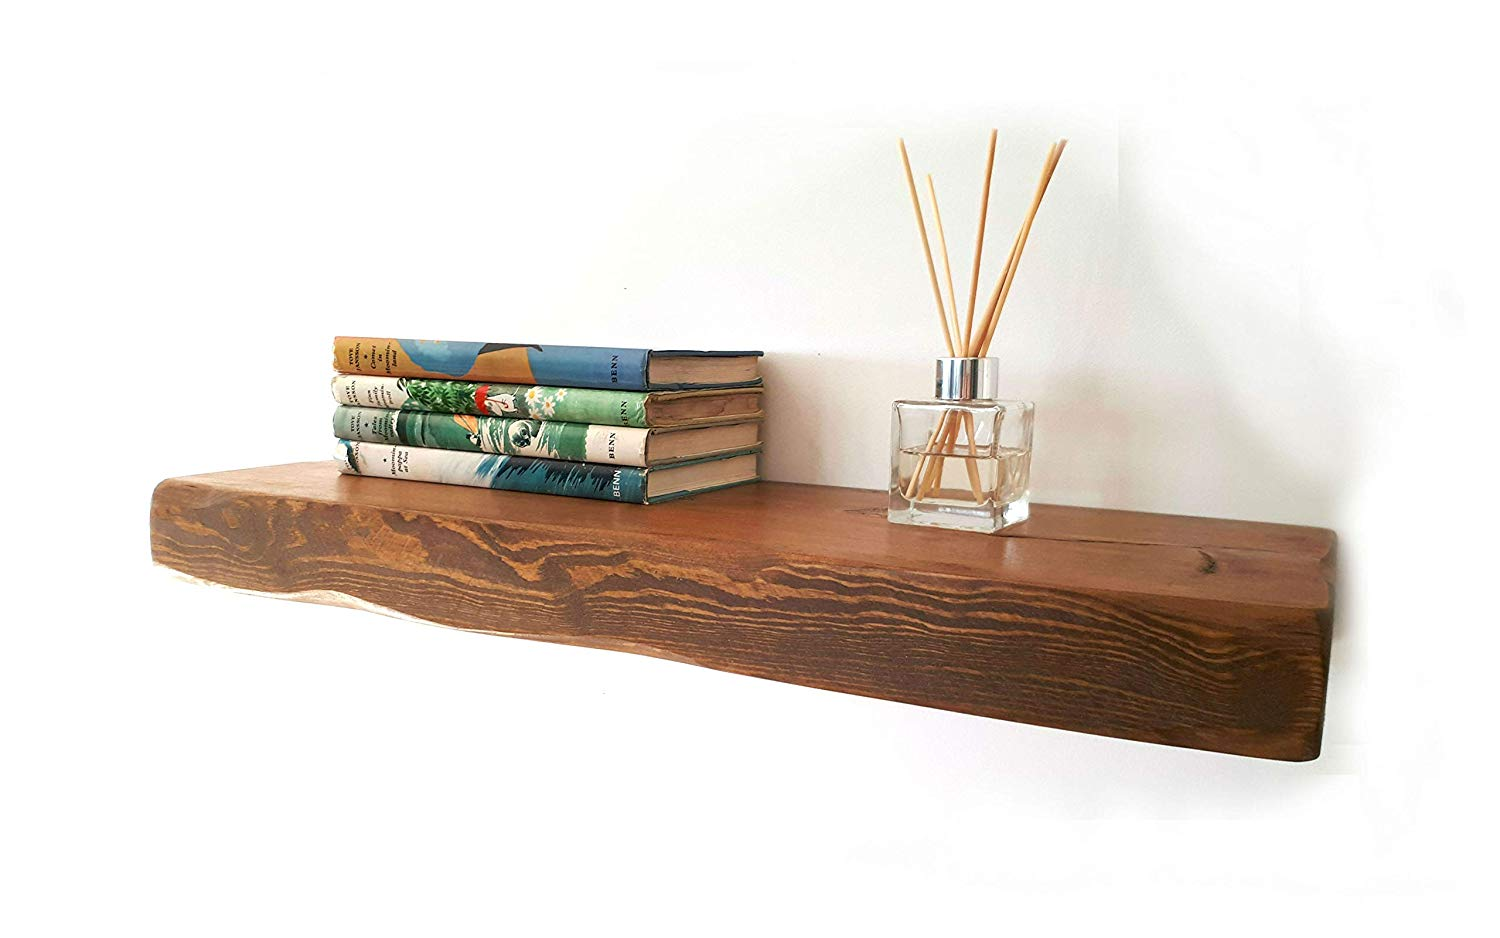 floating shelves reclaimed solid wood rustic wall shelf medium oak finish long perfect for living room kitchen bathroom office veneer food storage cabinet vinyl floor tile